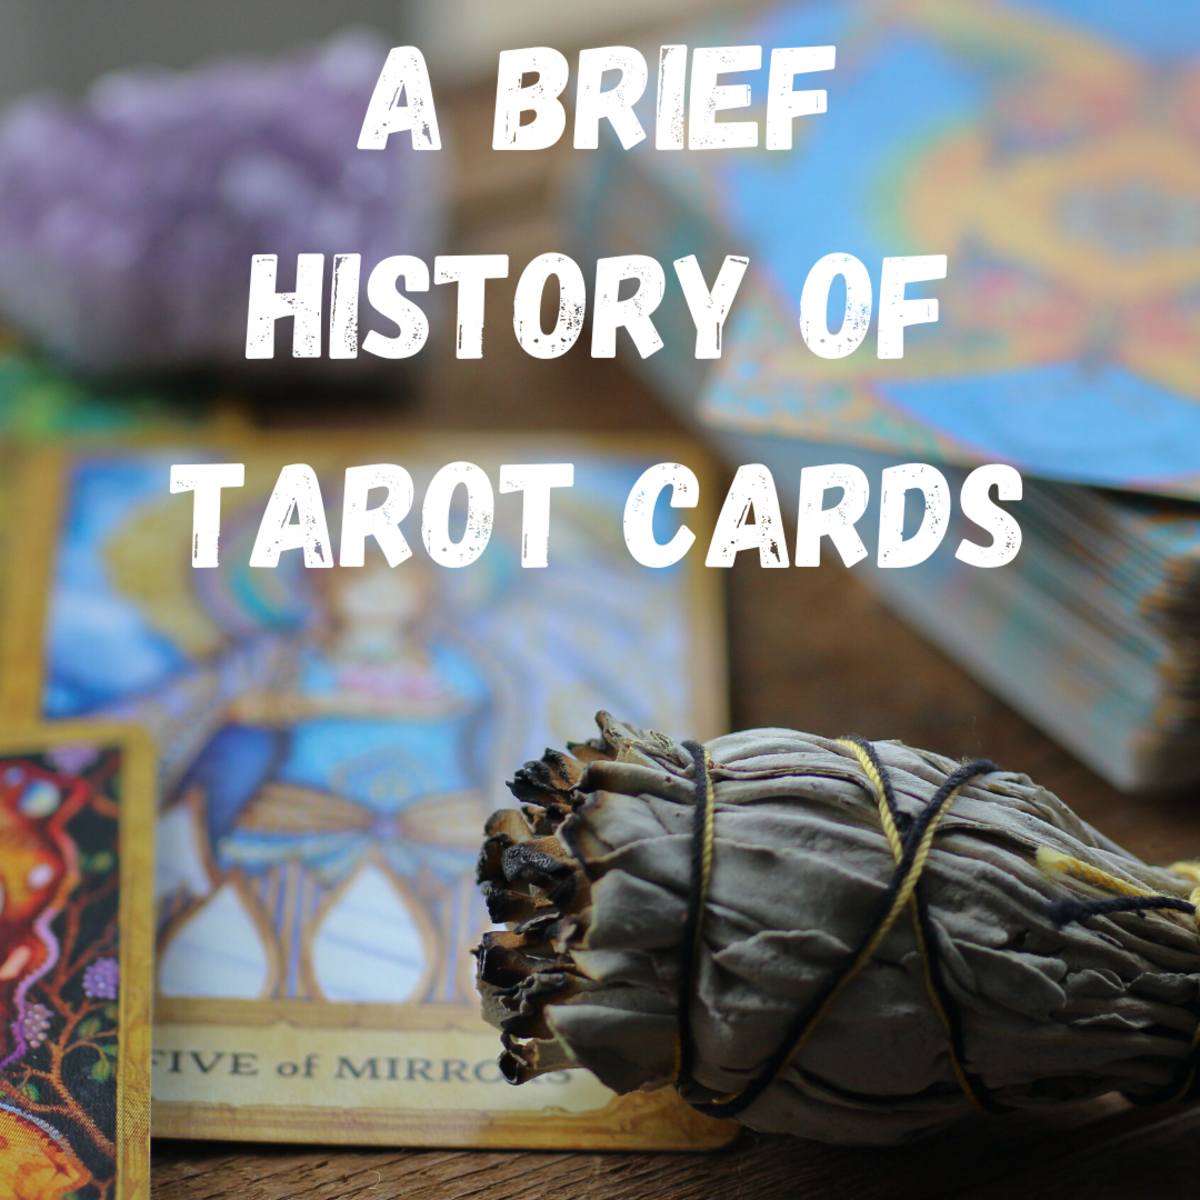 A Brief History of Tarot Cards